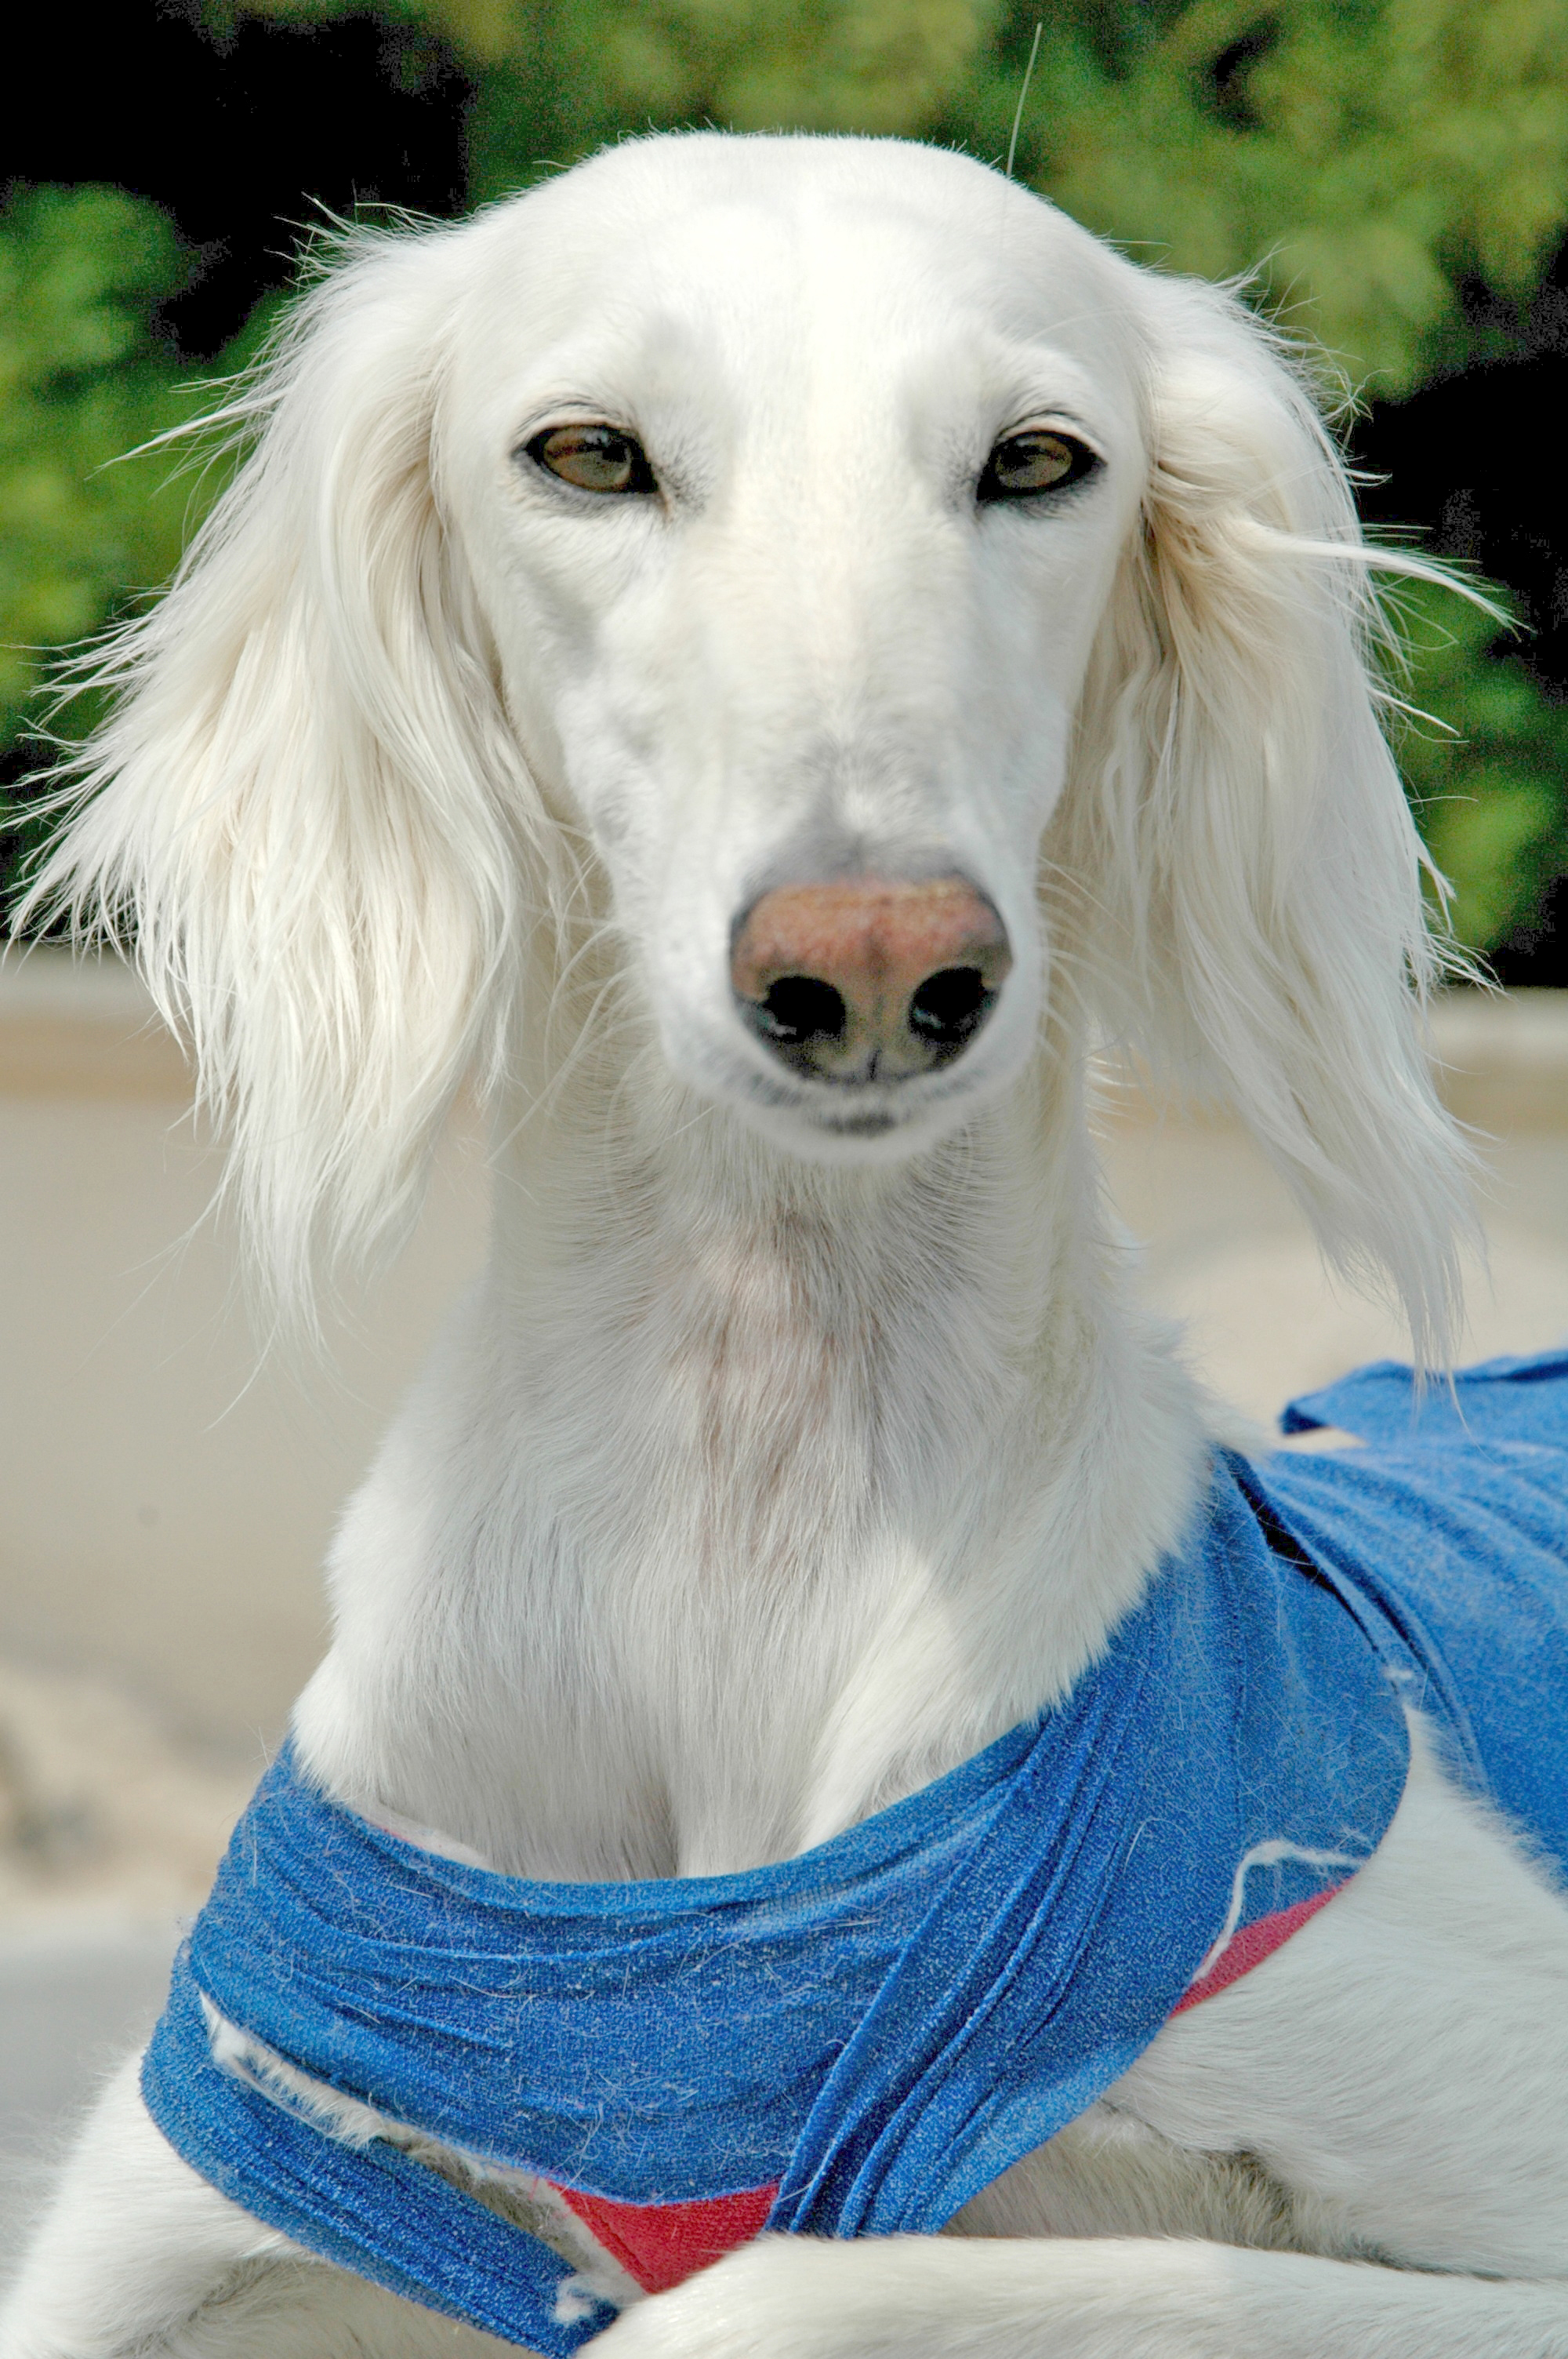 White Saluki dog  wallpaper